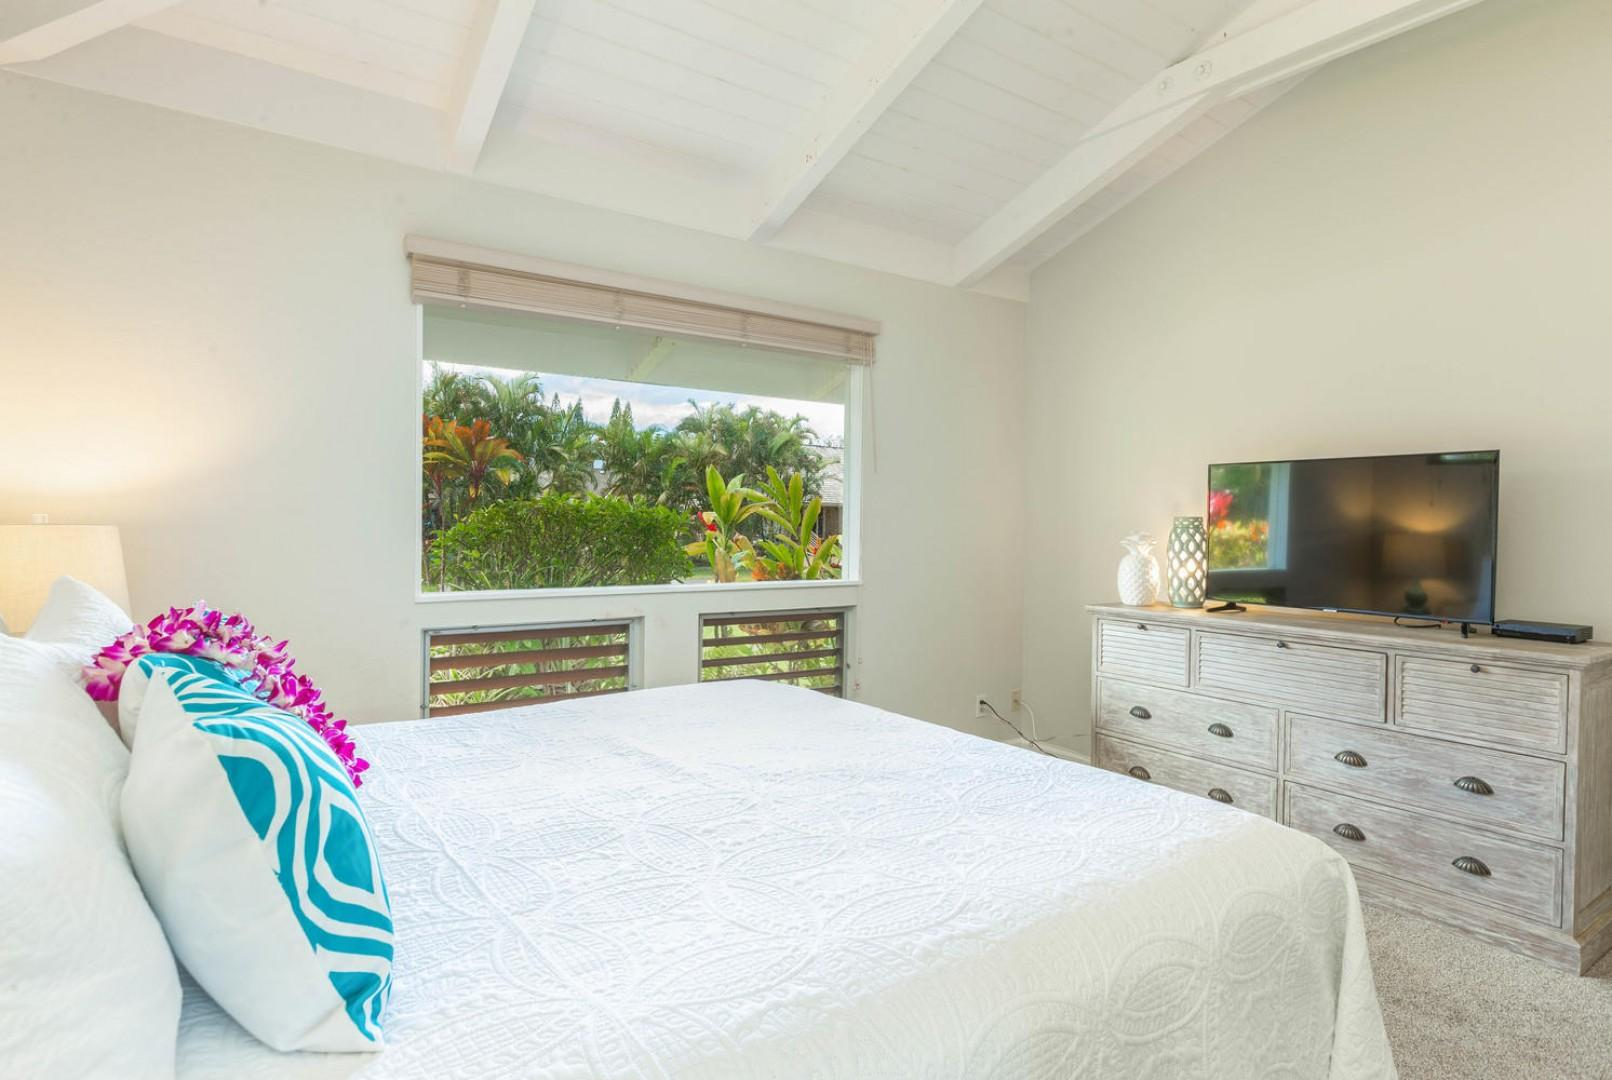 Enjoy watching the view and the TV from the comfort of your bed